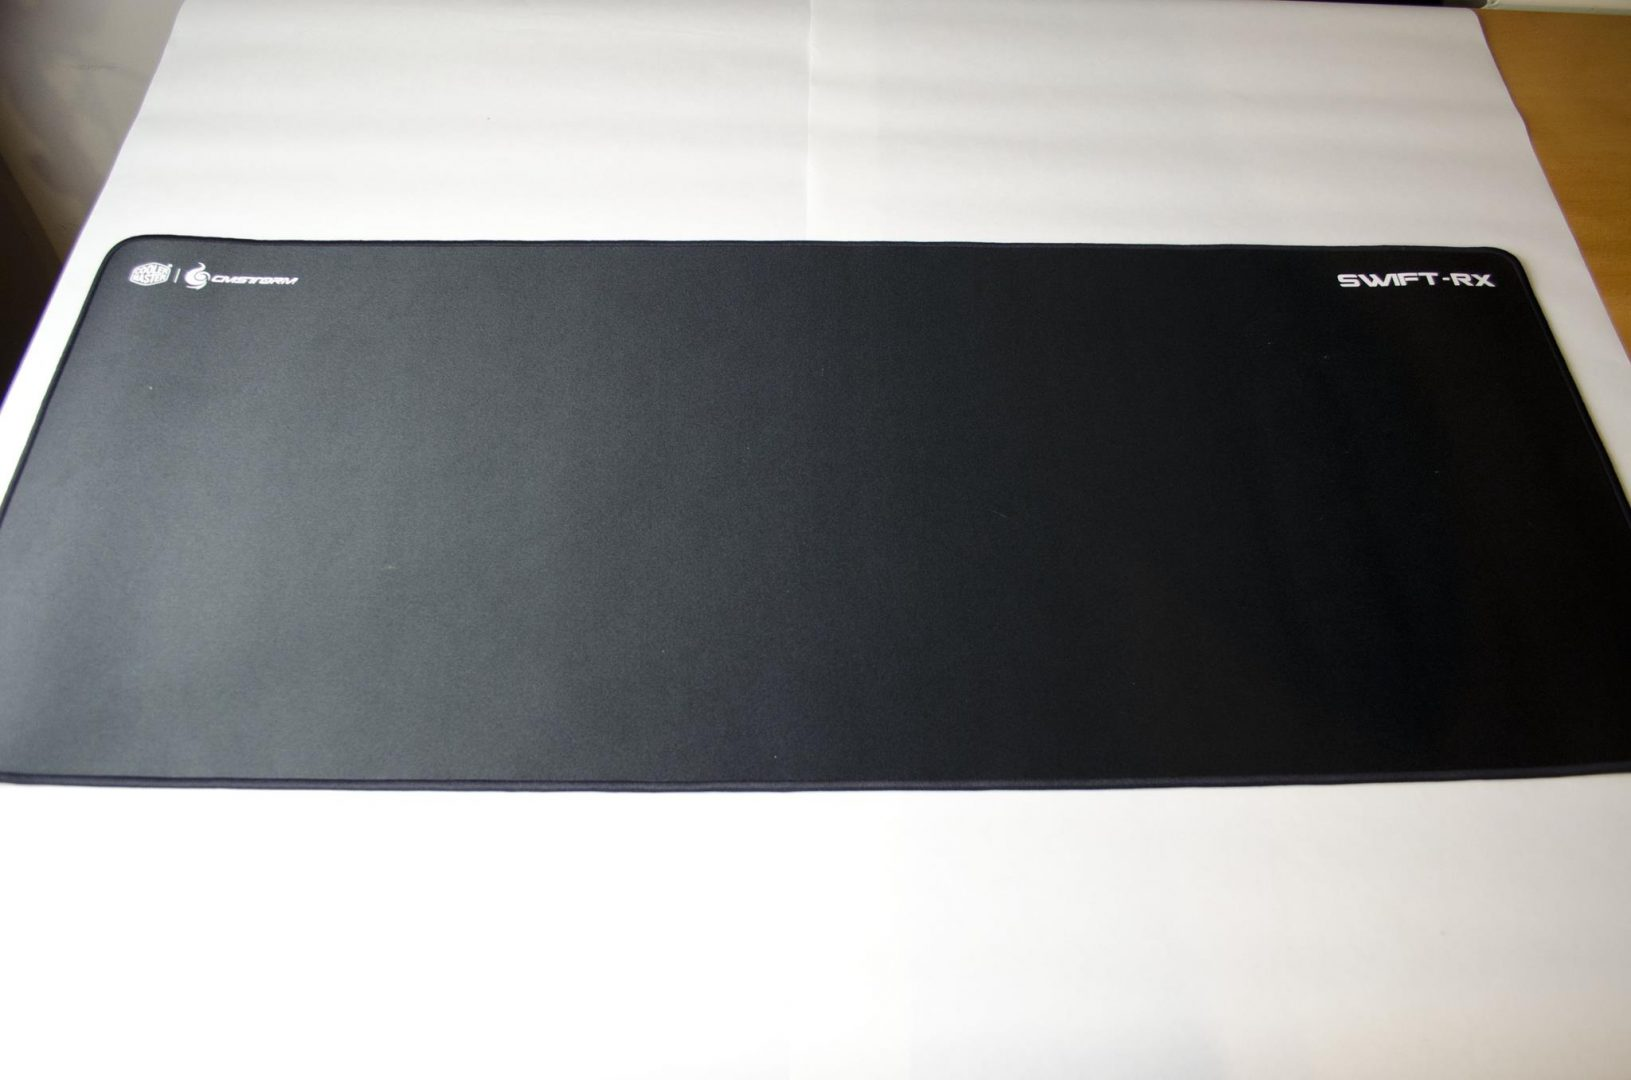 cooler master swift rx mousepad review_1